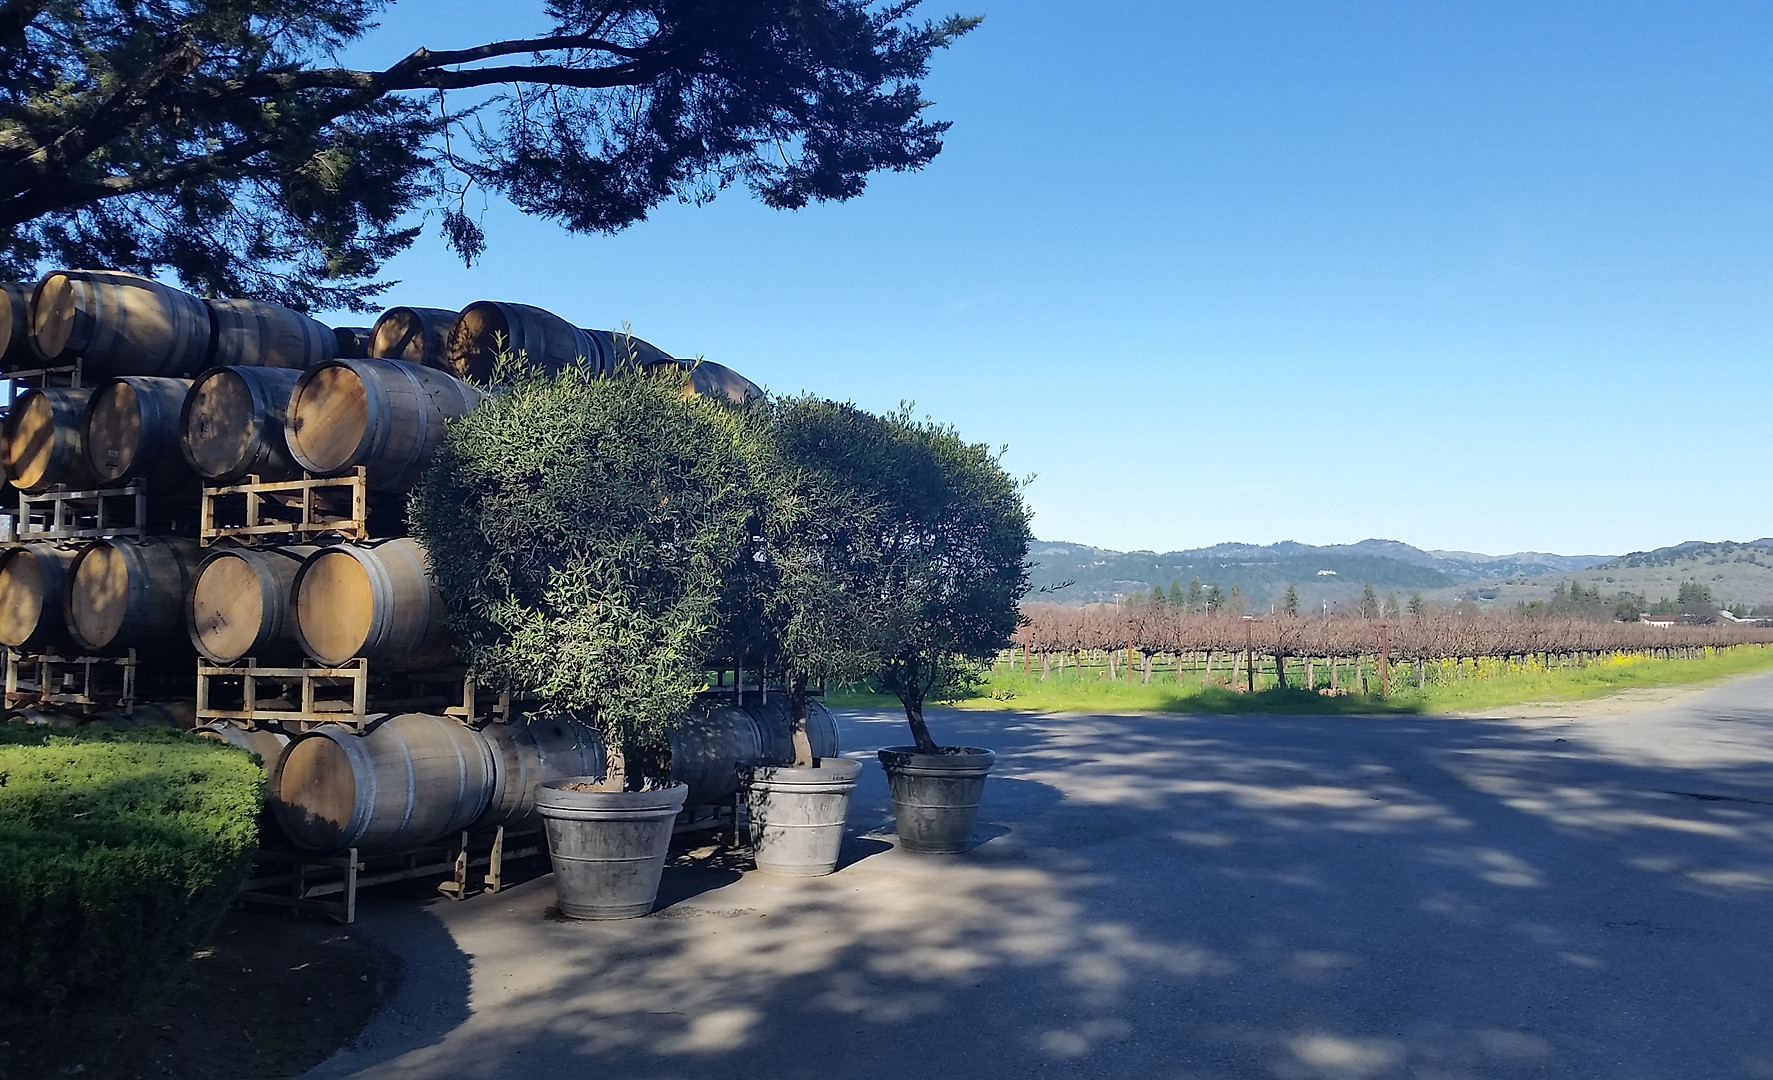 Inglenook Winery, Rutherford (Napa Valle